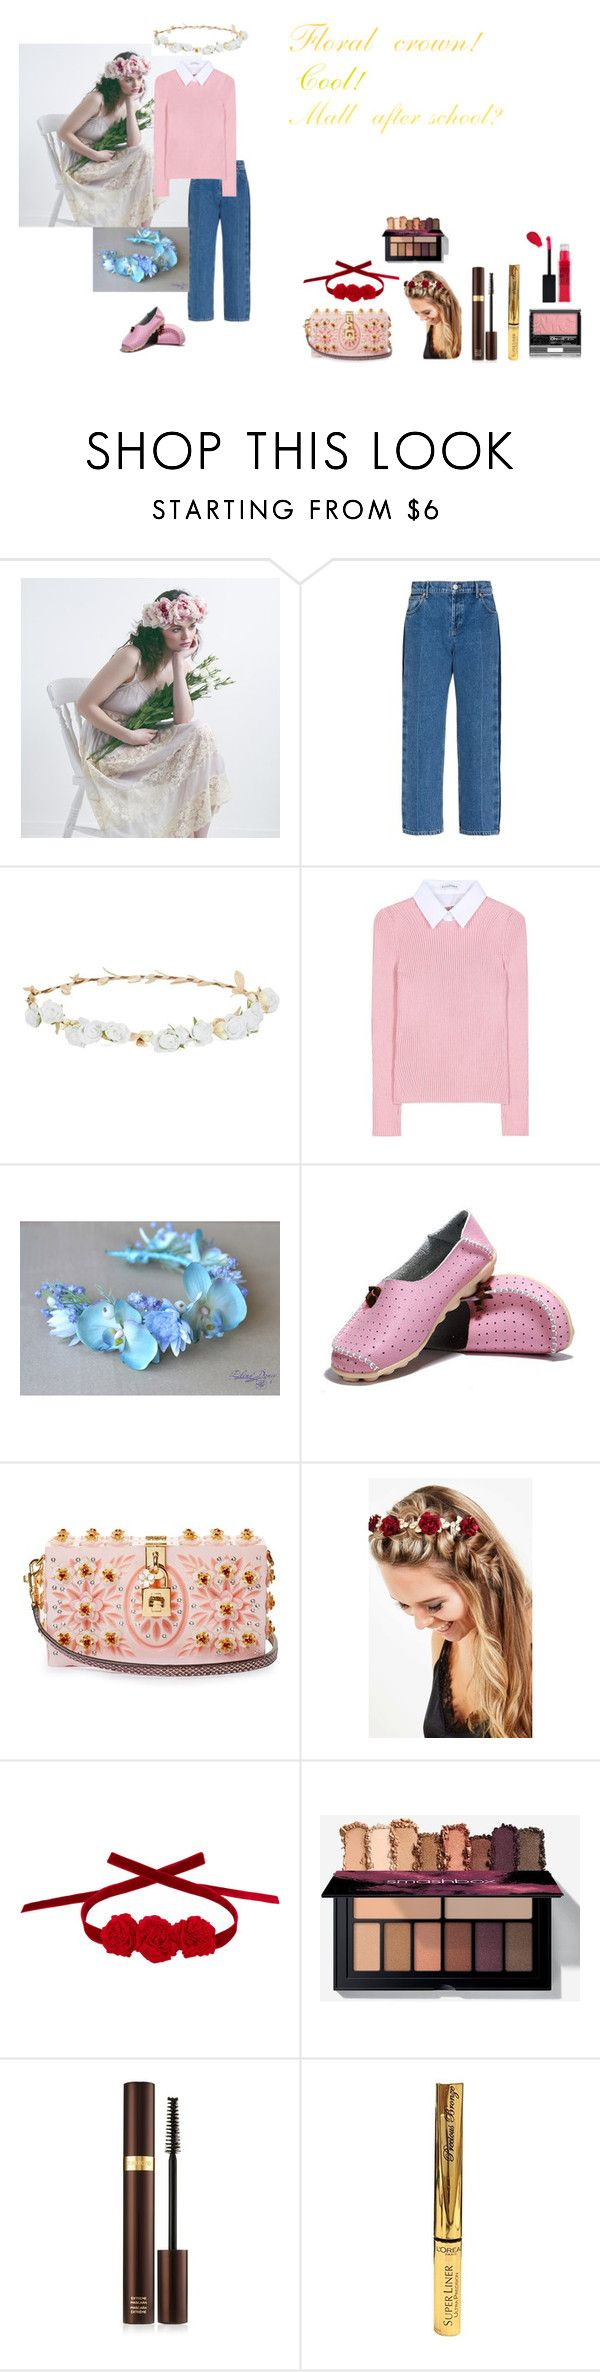 """""""For Scarlett (friend) - Scarlett's ideal wardrobe by me: #313: Floral crown!"""" by sarah-m-smith ❤ liked on Polyvore featuring Balenciaga, Design Lab, Altuzarra, Dolce&Gabbana, Johnny Loves Rosie, Vjera Vilicnik, Tom Ford, L'Oréal Paris and Maybelline"""